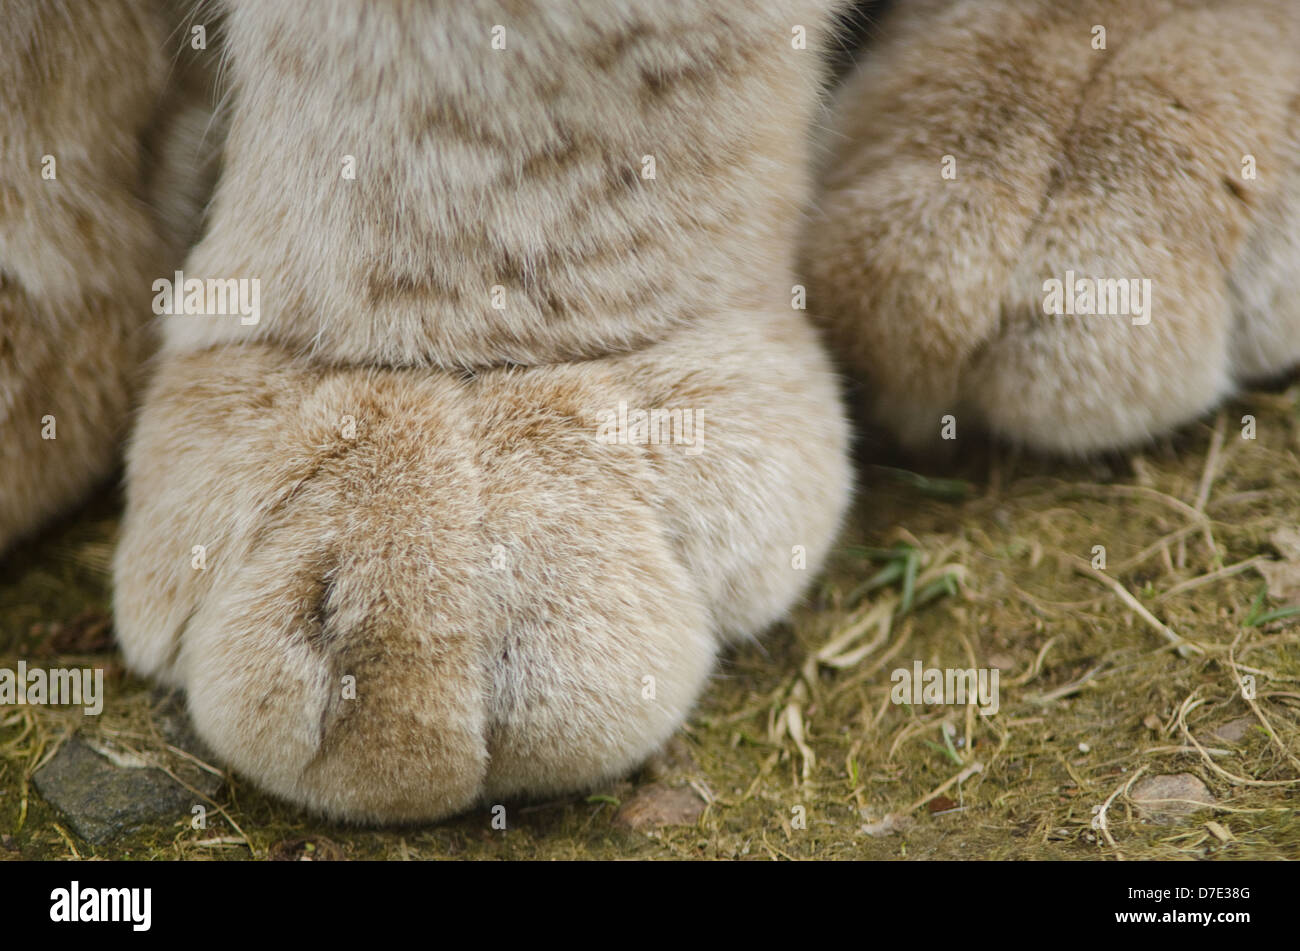 Closeup of a paw of the Eurasian Lynx, Lynx lynx - Stock Image